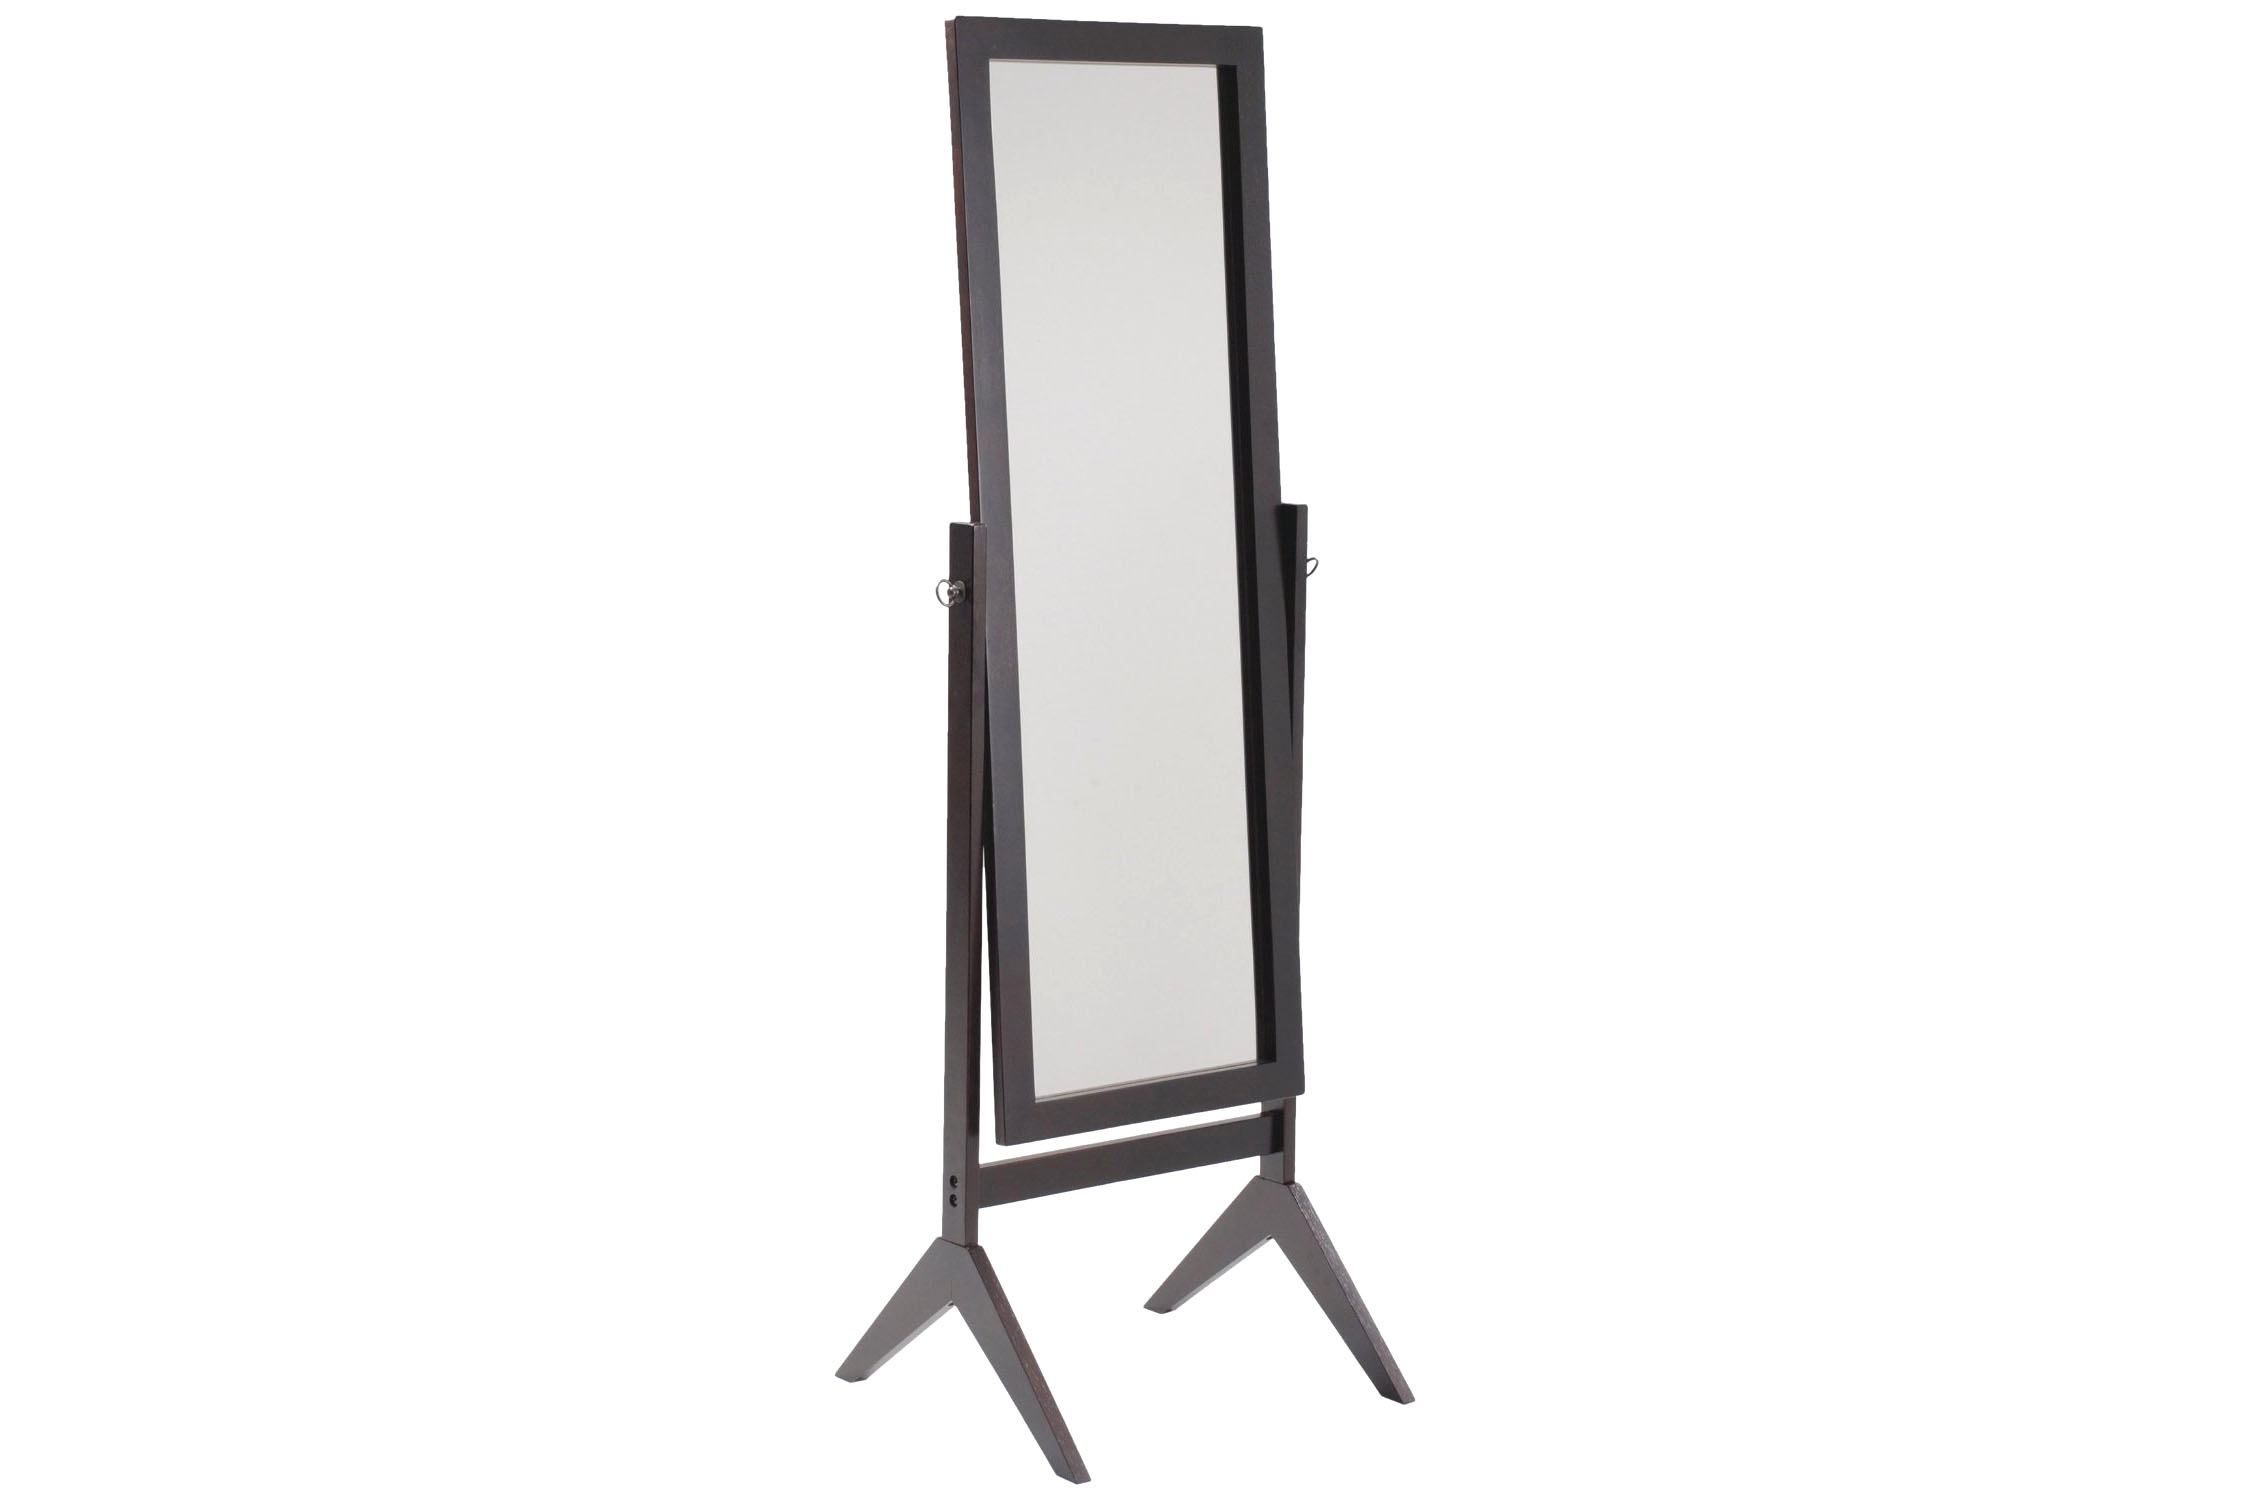 Mirror for Outfits - 4.5 stars - $49 (Prime)